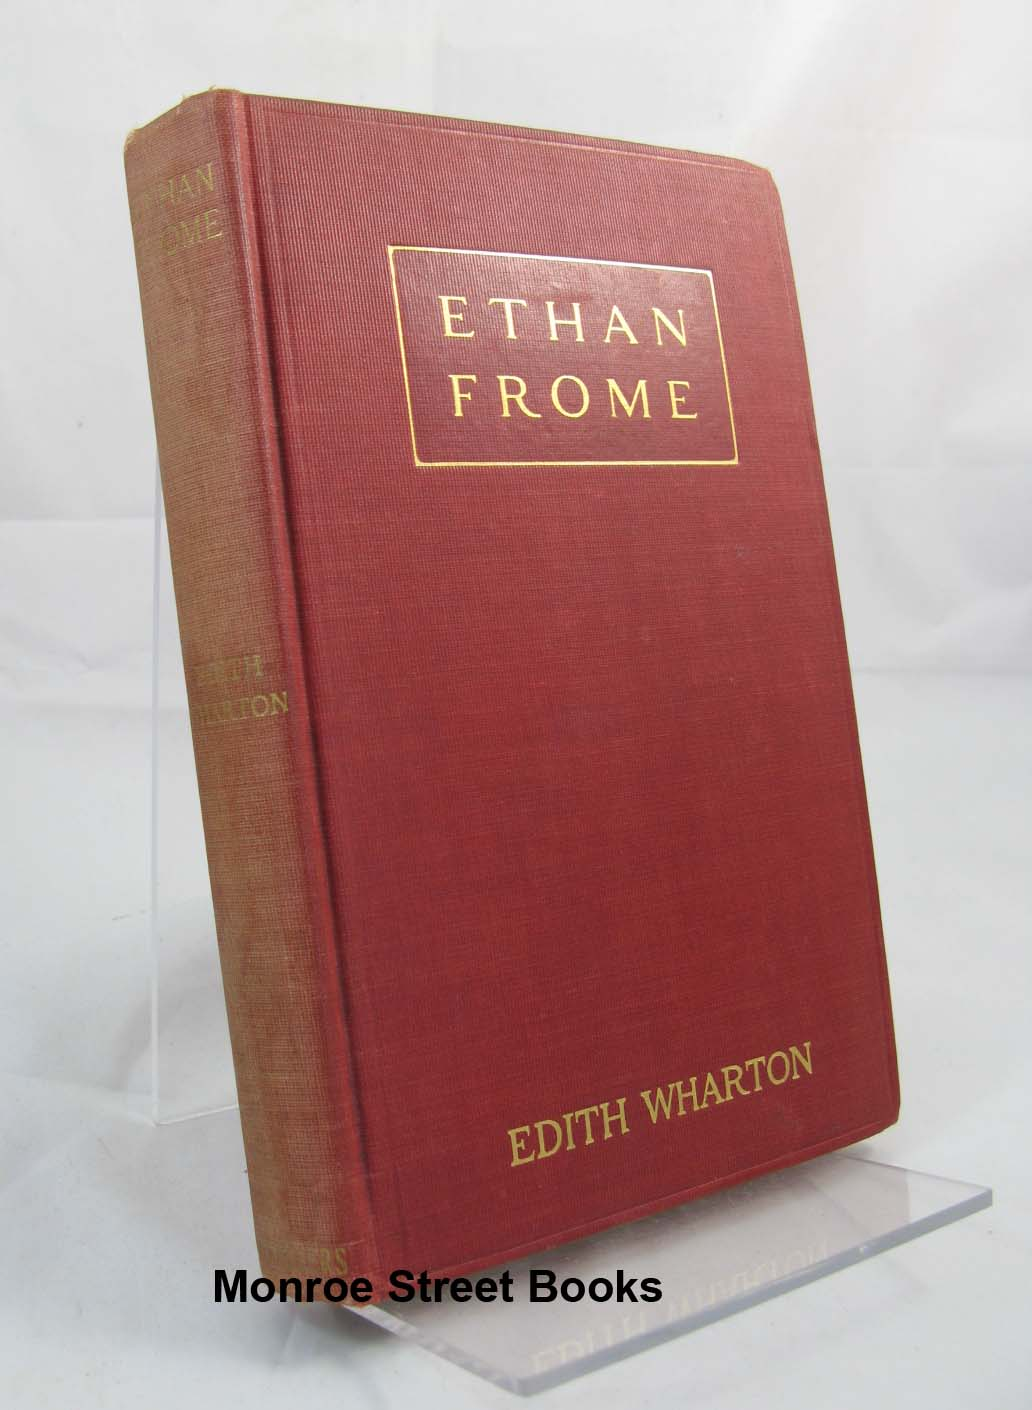 Ethan FromeWharton, Edith - Product Image